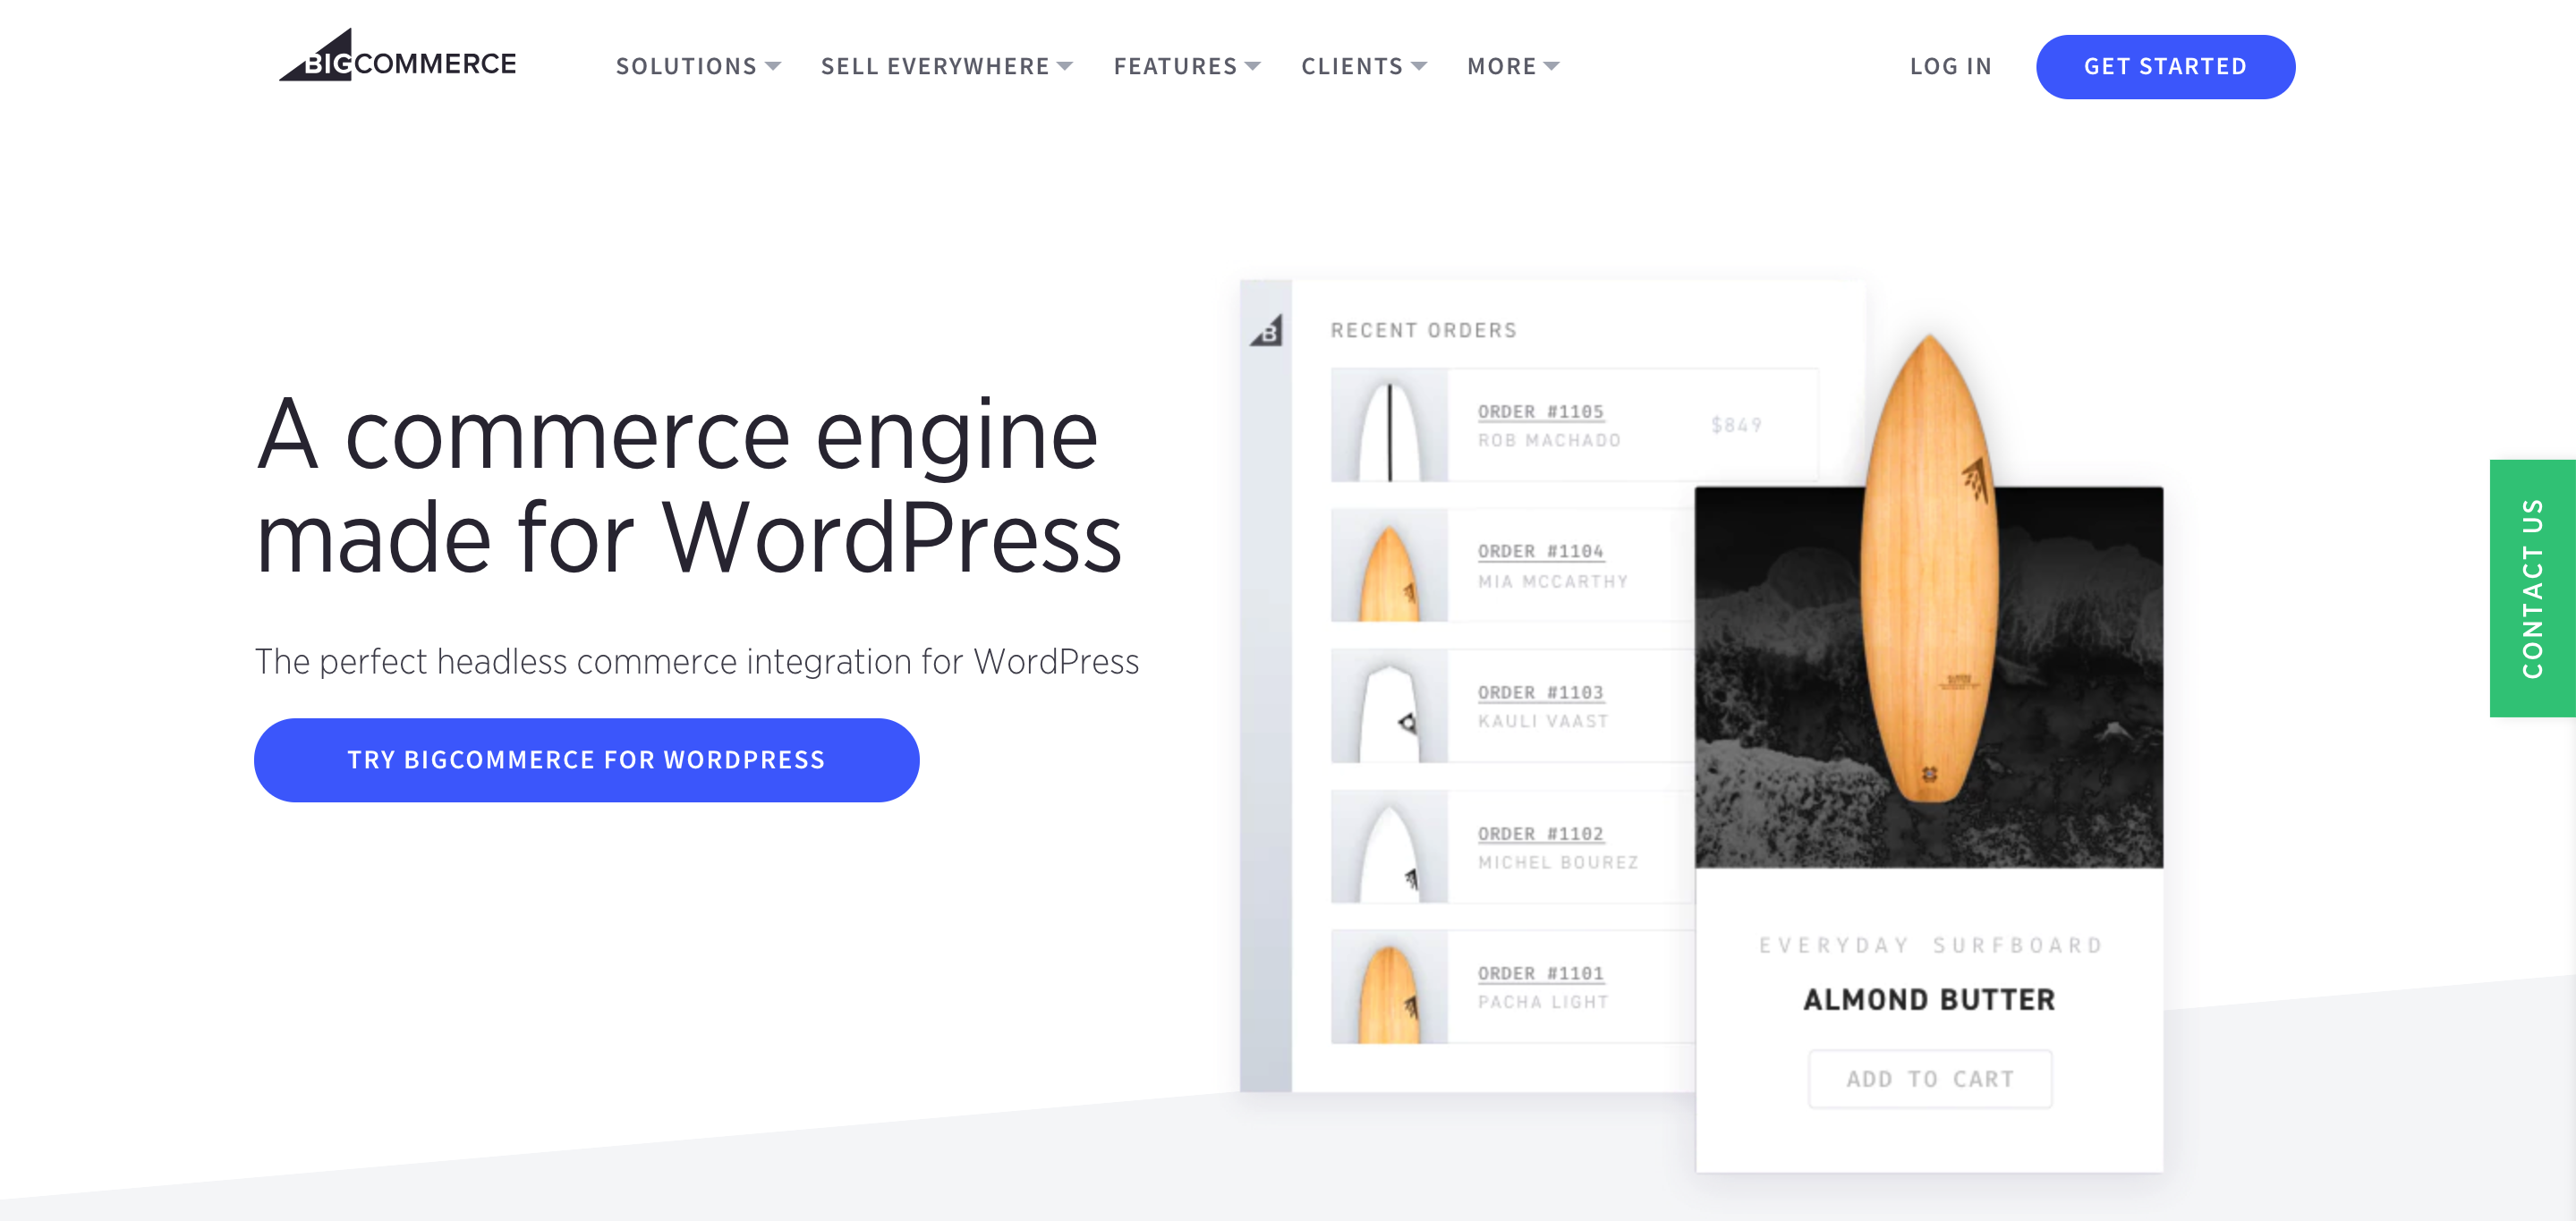 bigcommerce_wordpress